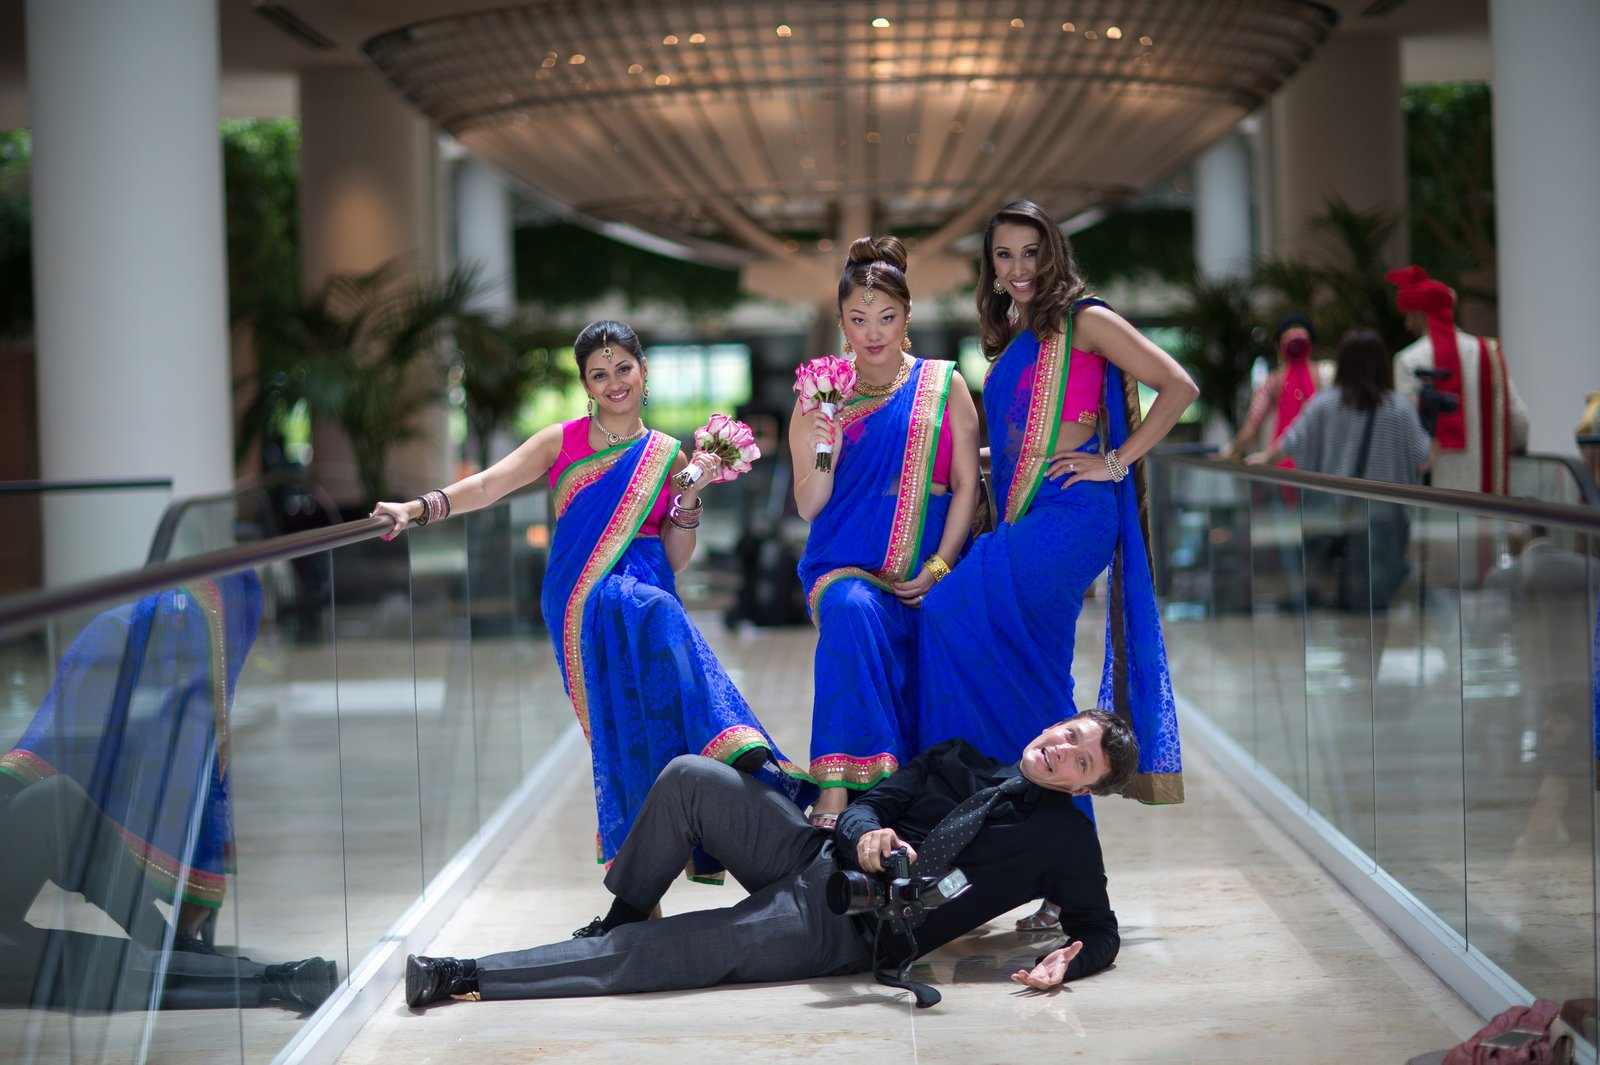 Me and my family, Miami Wedding Photographers | Häring Photography, Indian Wedding Photographer in Florida, Best Muslim, Hindu - South East Asian Wedding Photographers